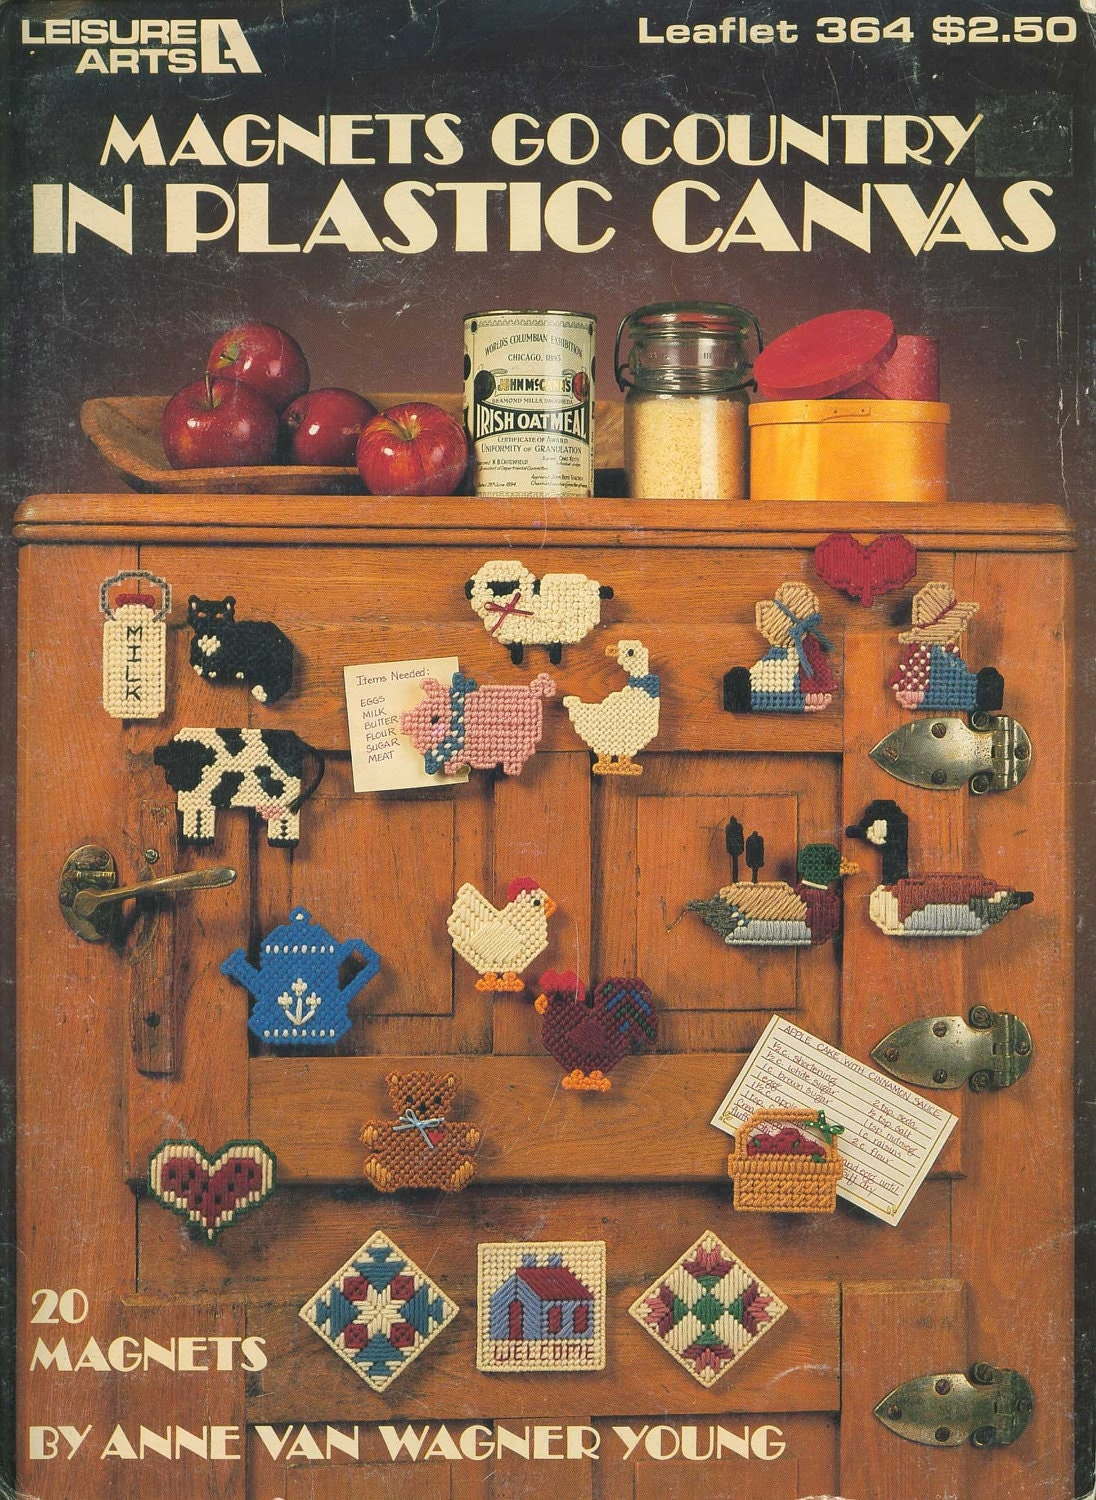 Magnets Go Country in Plastic Canvas, leaflet 364 from Leisure Arts - MastersCreations